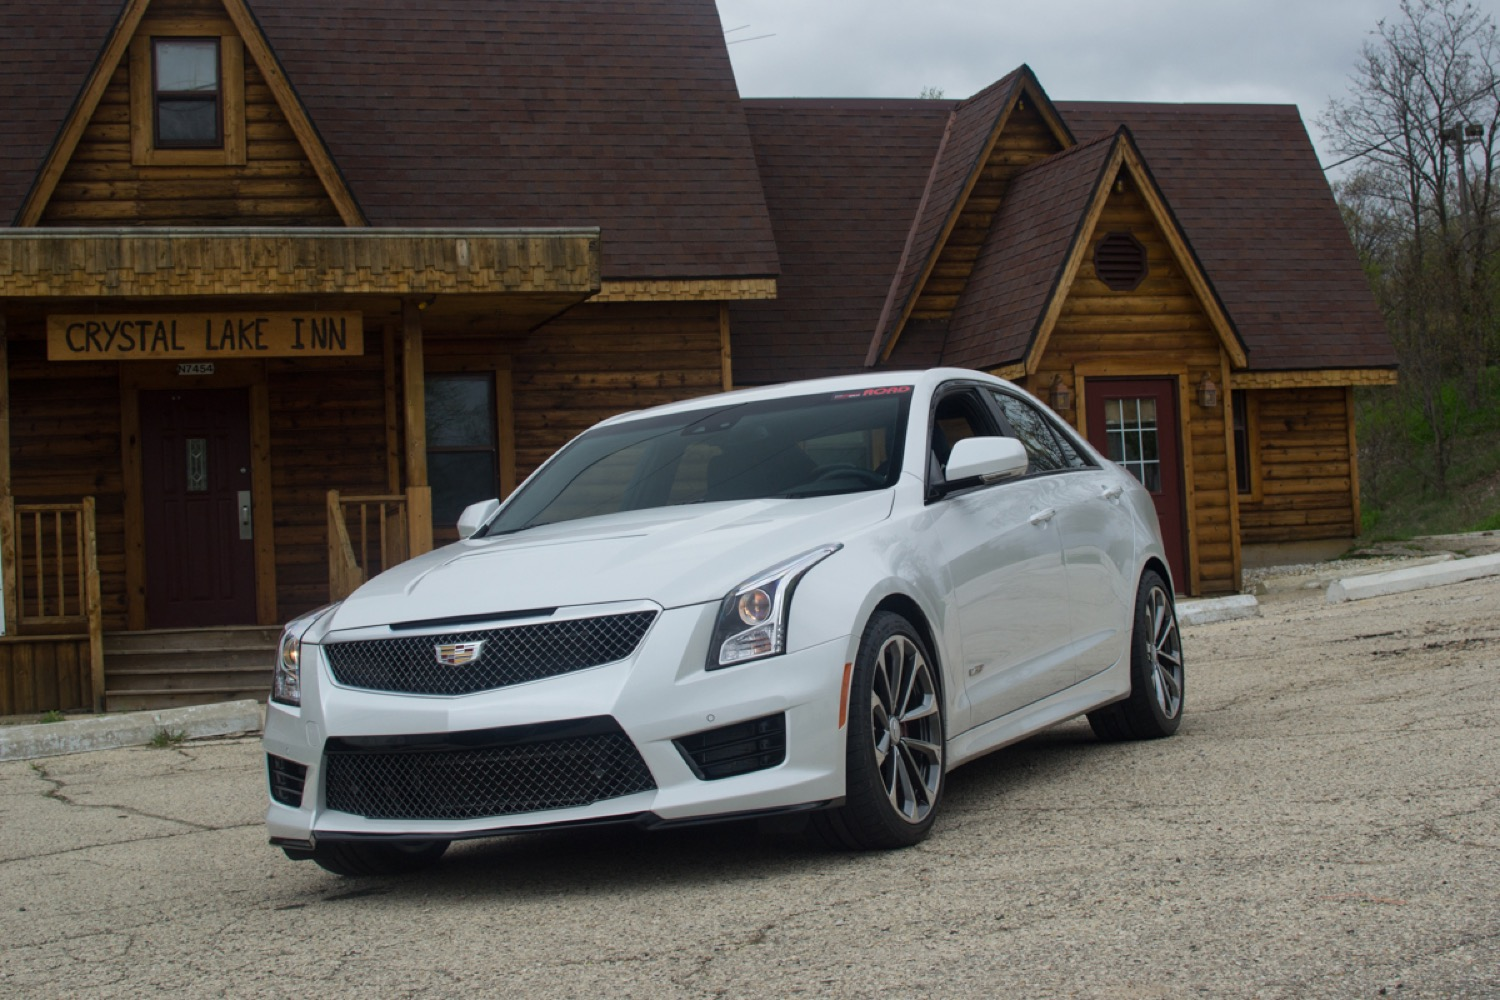 2019 Cadillac ATS V Sedan photo - 5